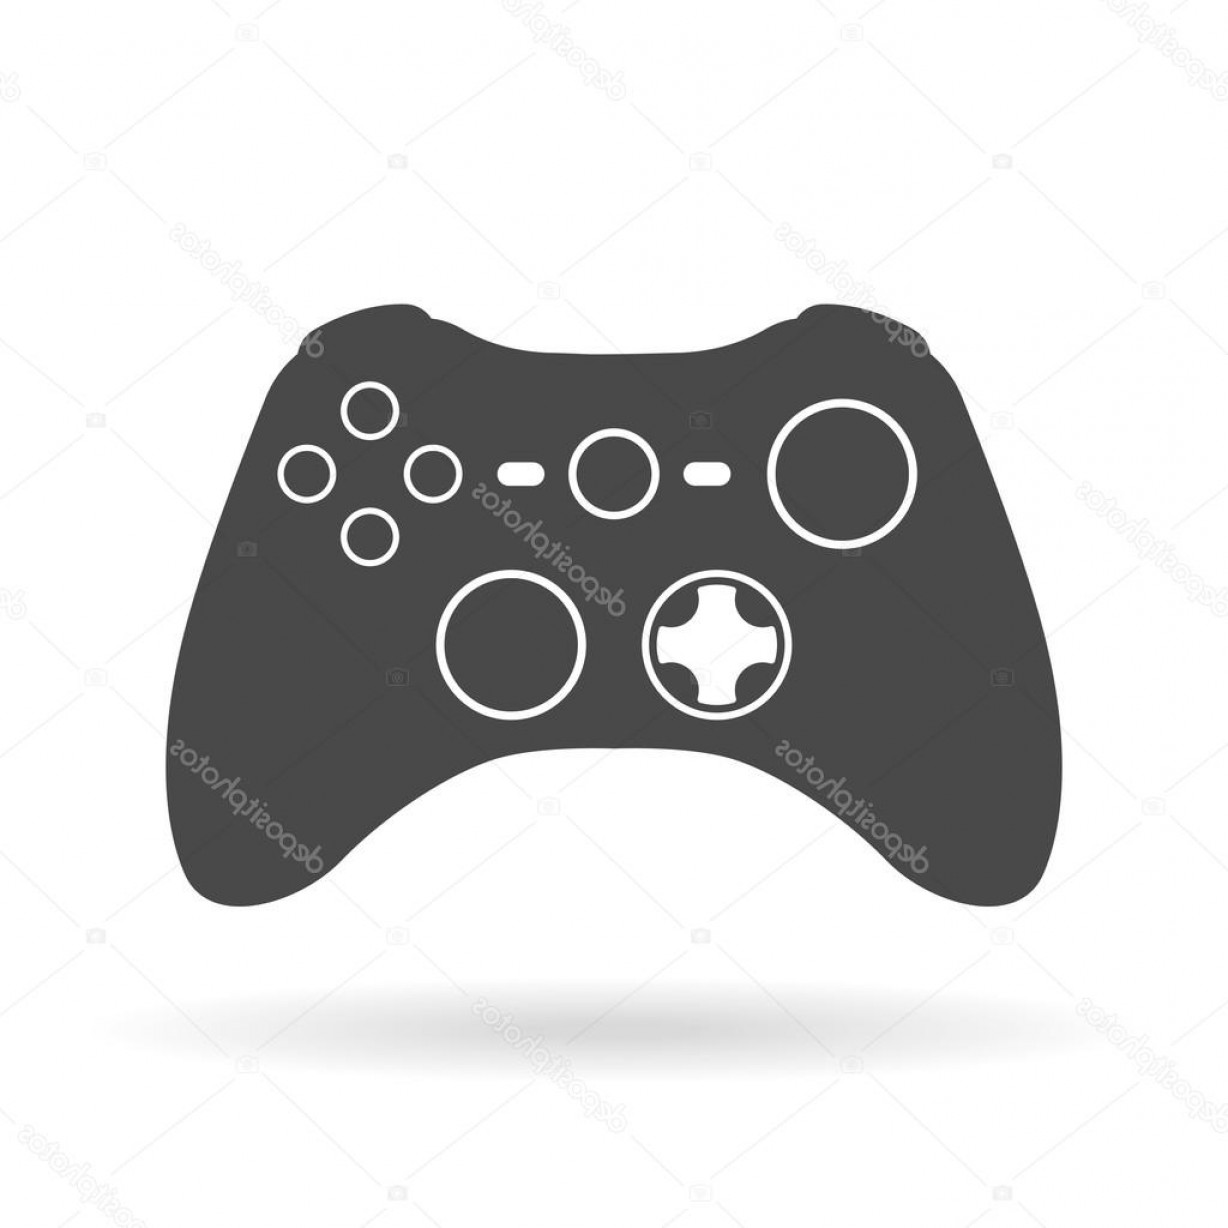 Xbox Game Controller Vector: Stock Illustration Game Controller Flat Icon